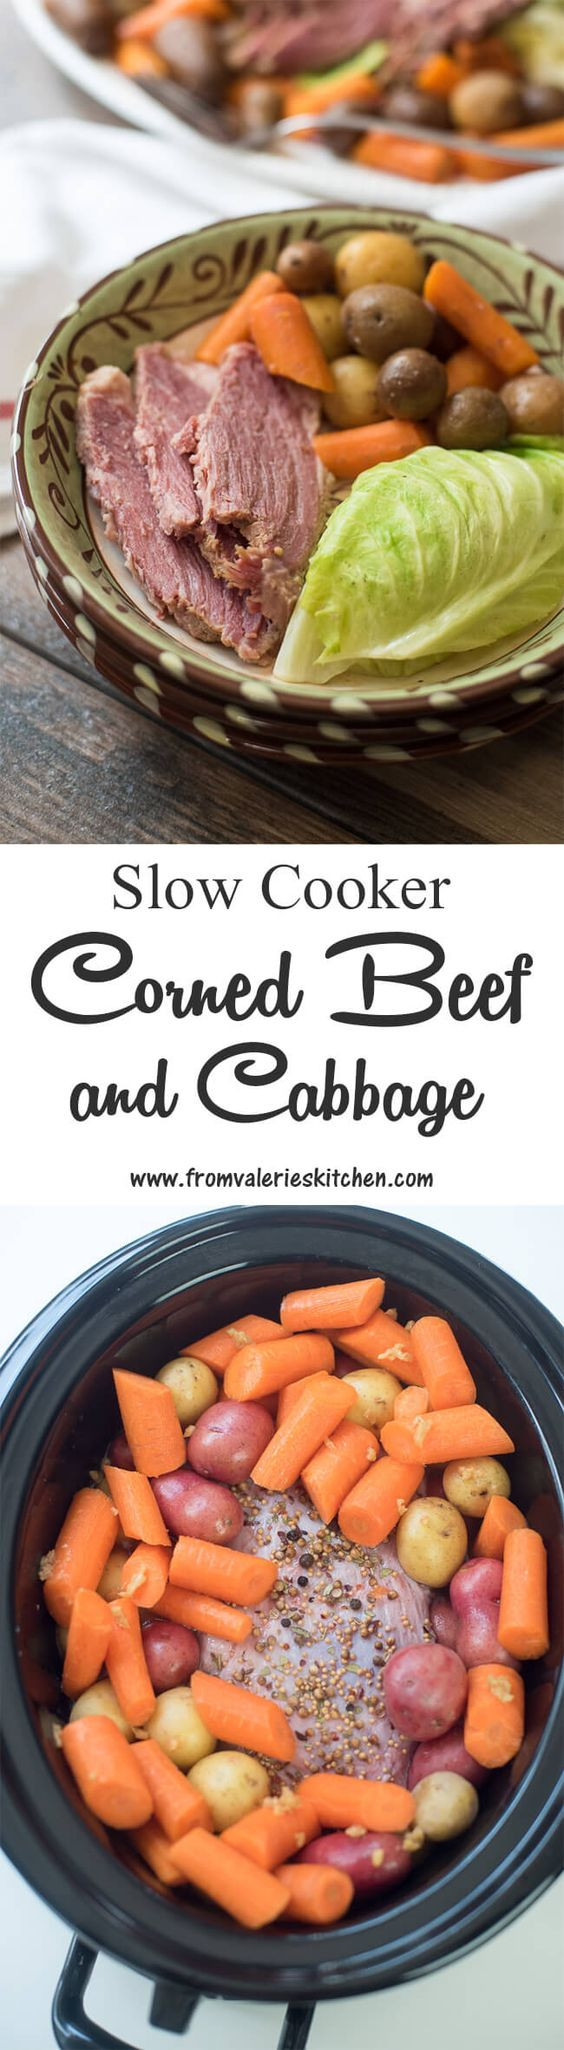 Cooking Corned Beef And Cabbage  Slow Cooker Corned Beef and Cabbage Recipe